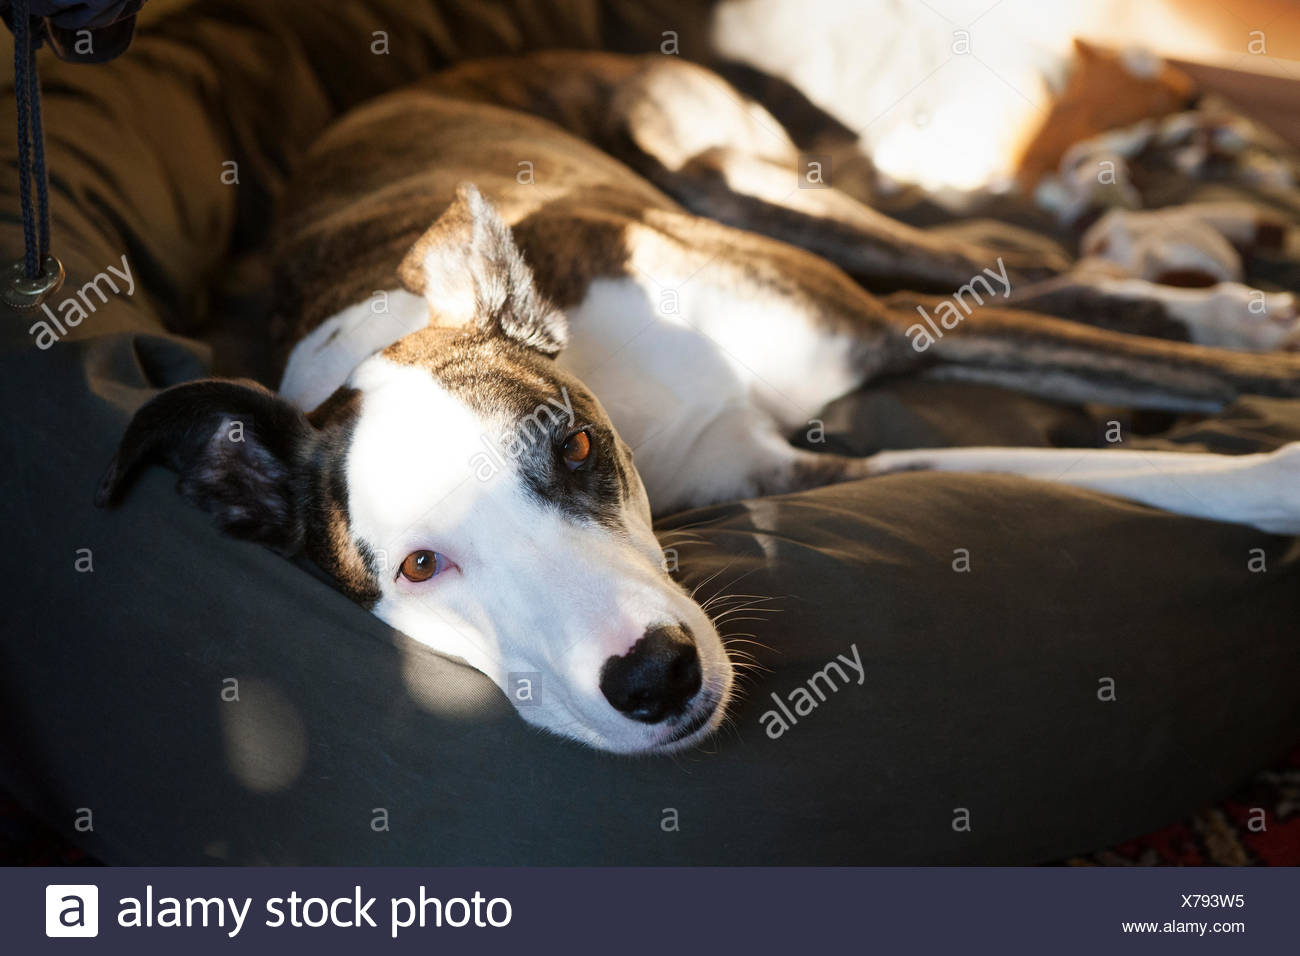 Dog lying in the dog bed - Stock Image